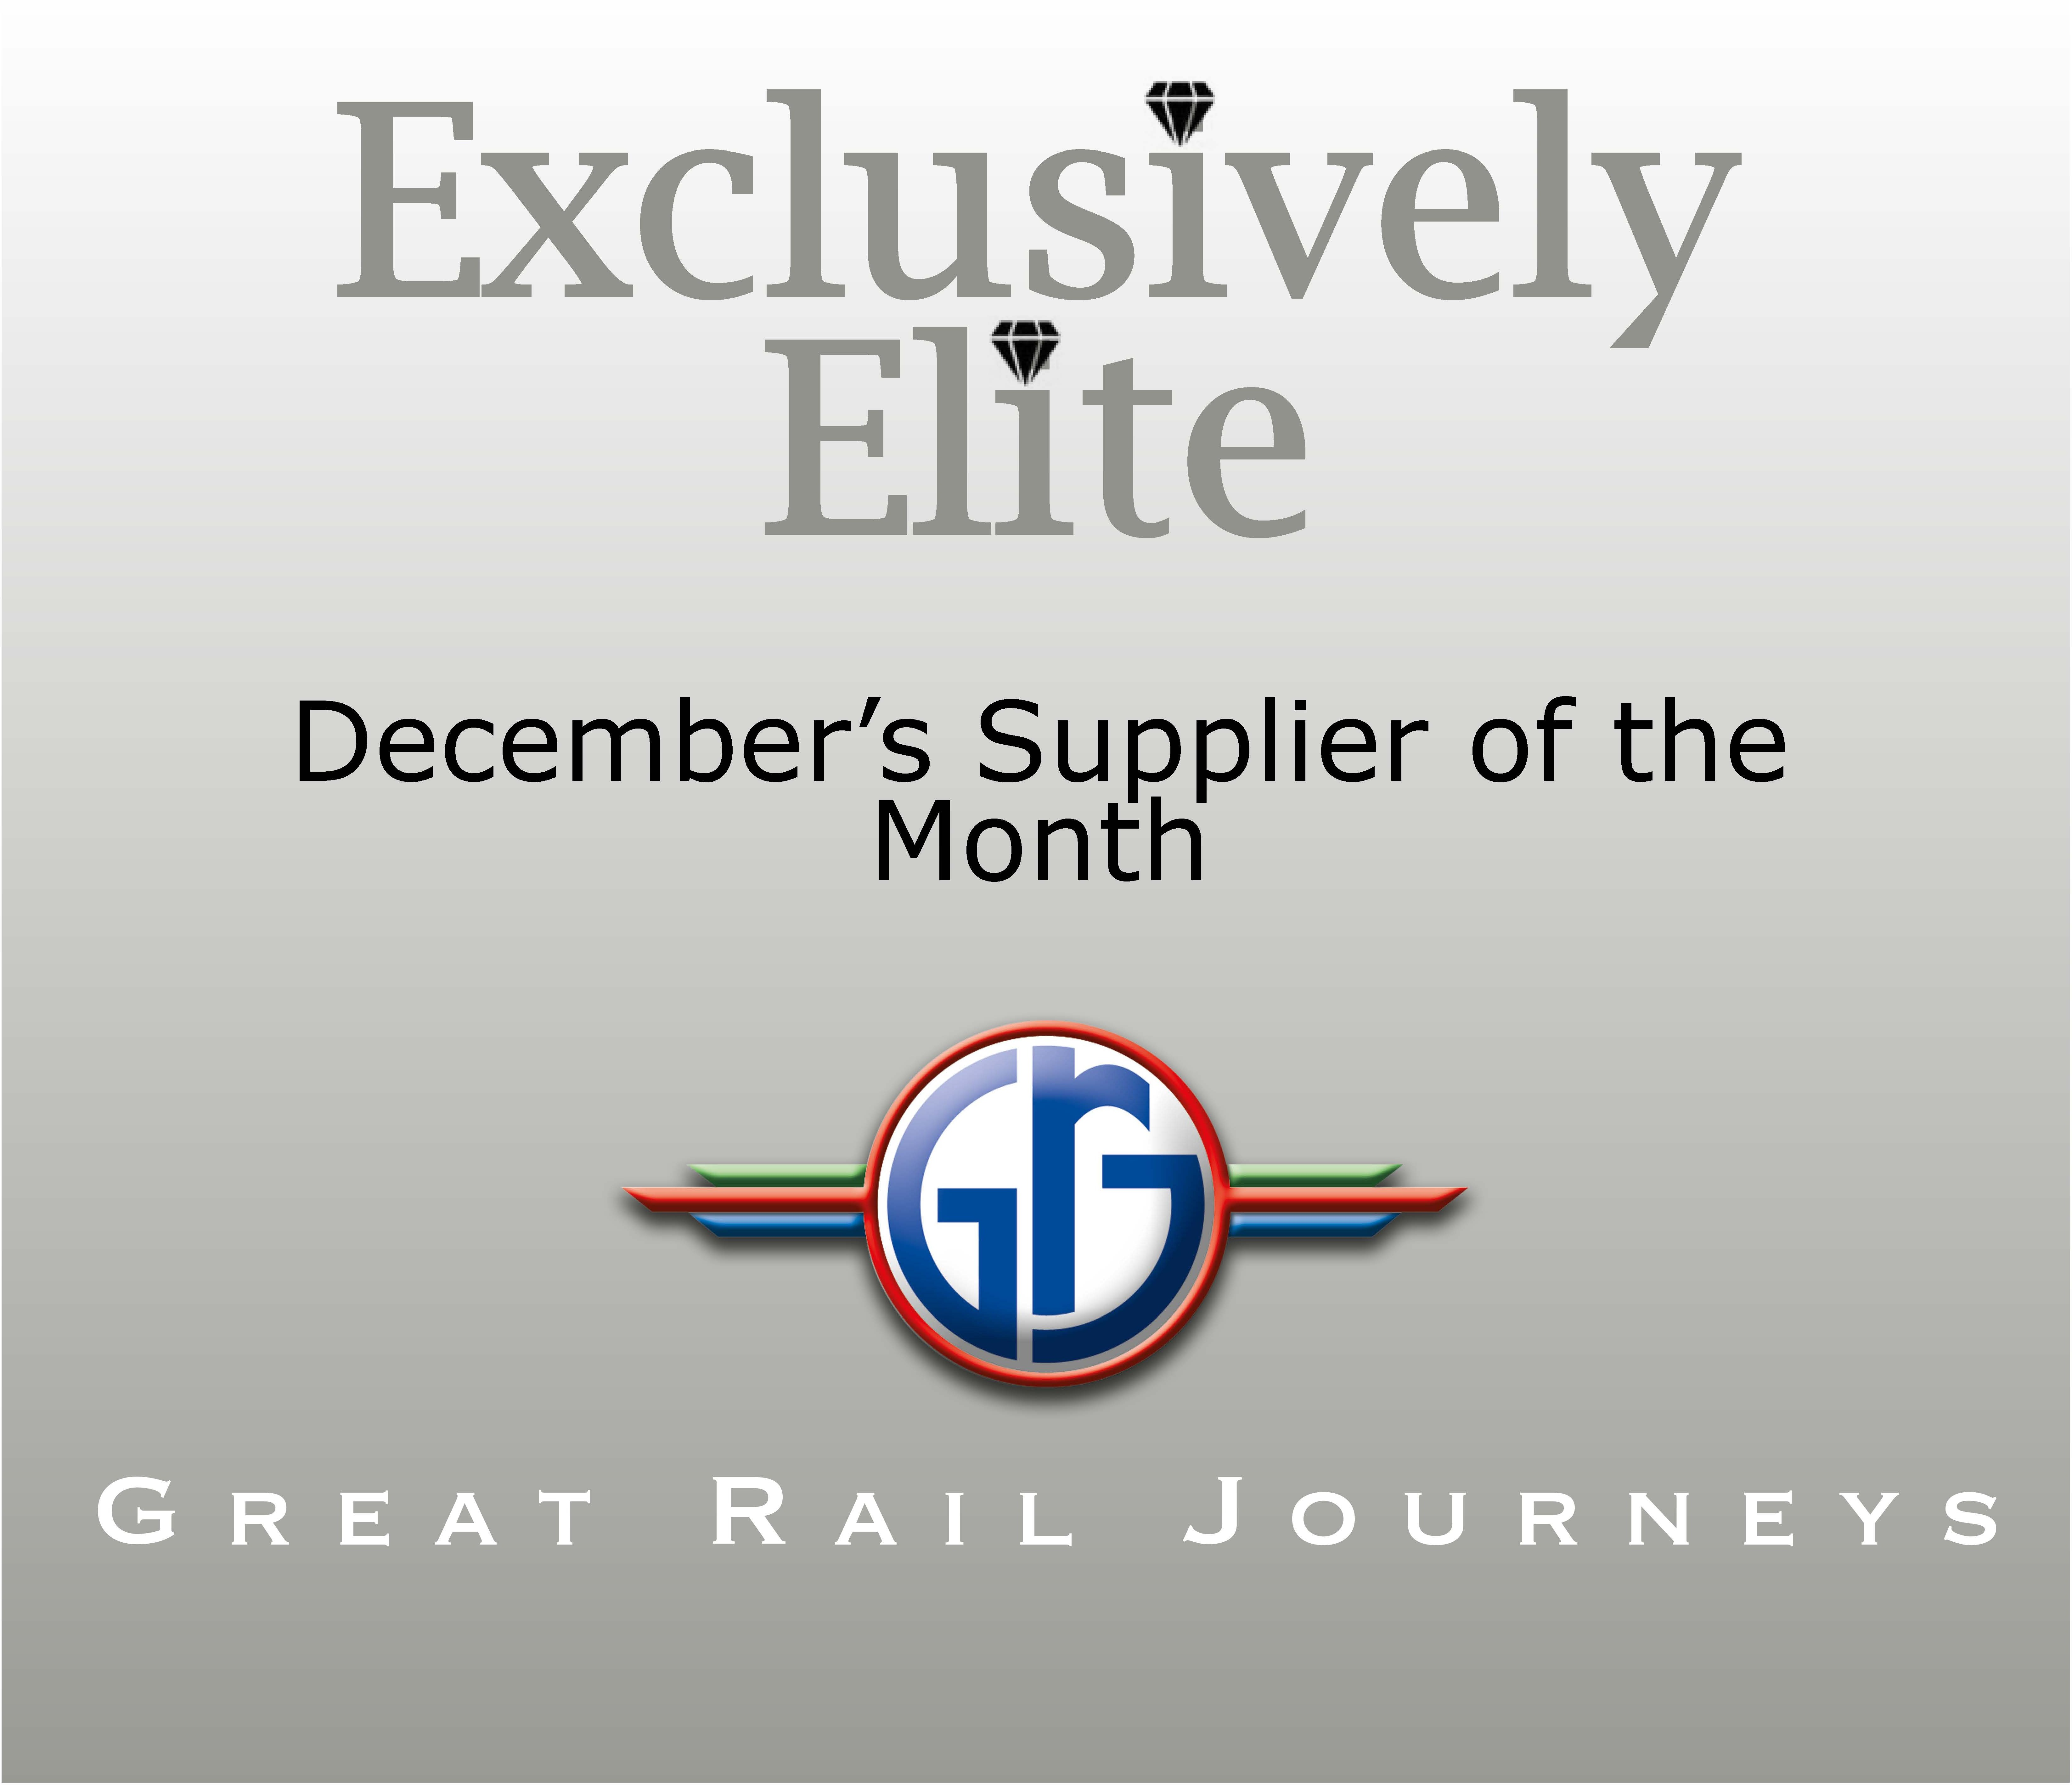 December's Supplier of the Month is Great Rail Journeys